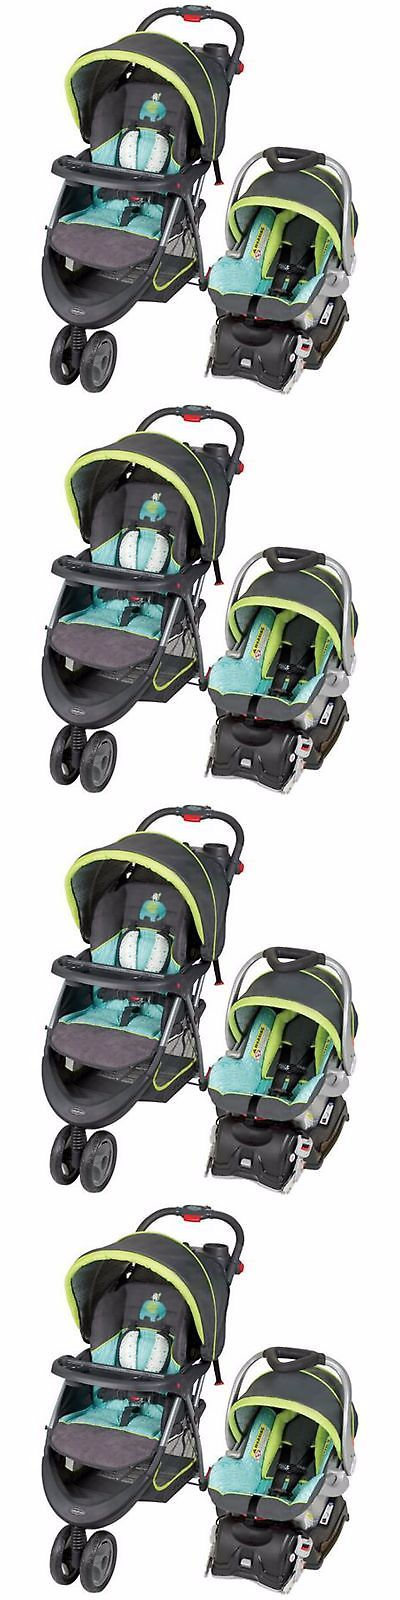 baby and kid stuff: Baby Stroller And Car Seat Combo Travel System Pram Pushchair Toddler Strollers BUY IT NOW ONLY: $194.5